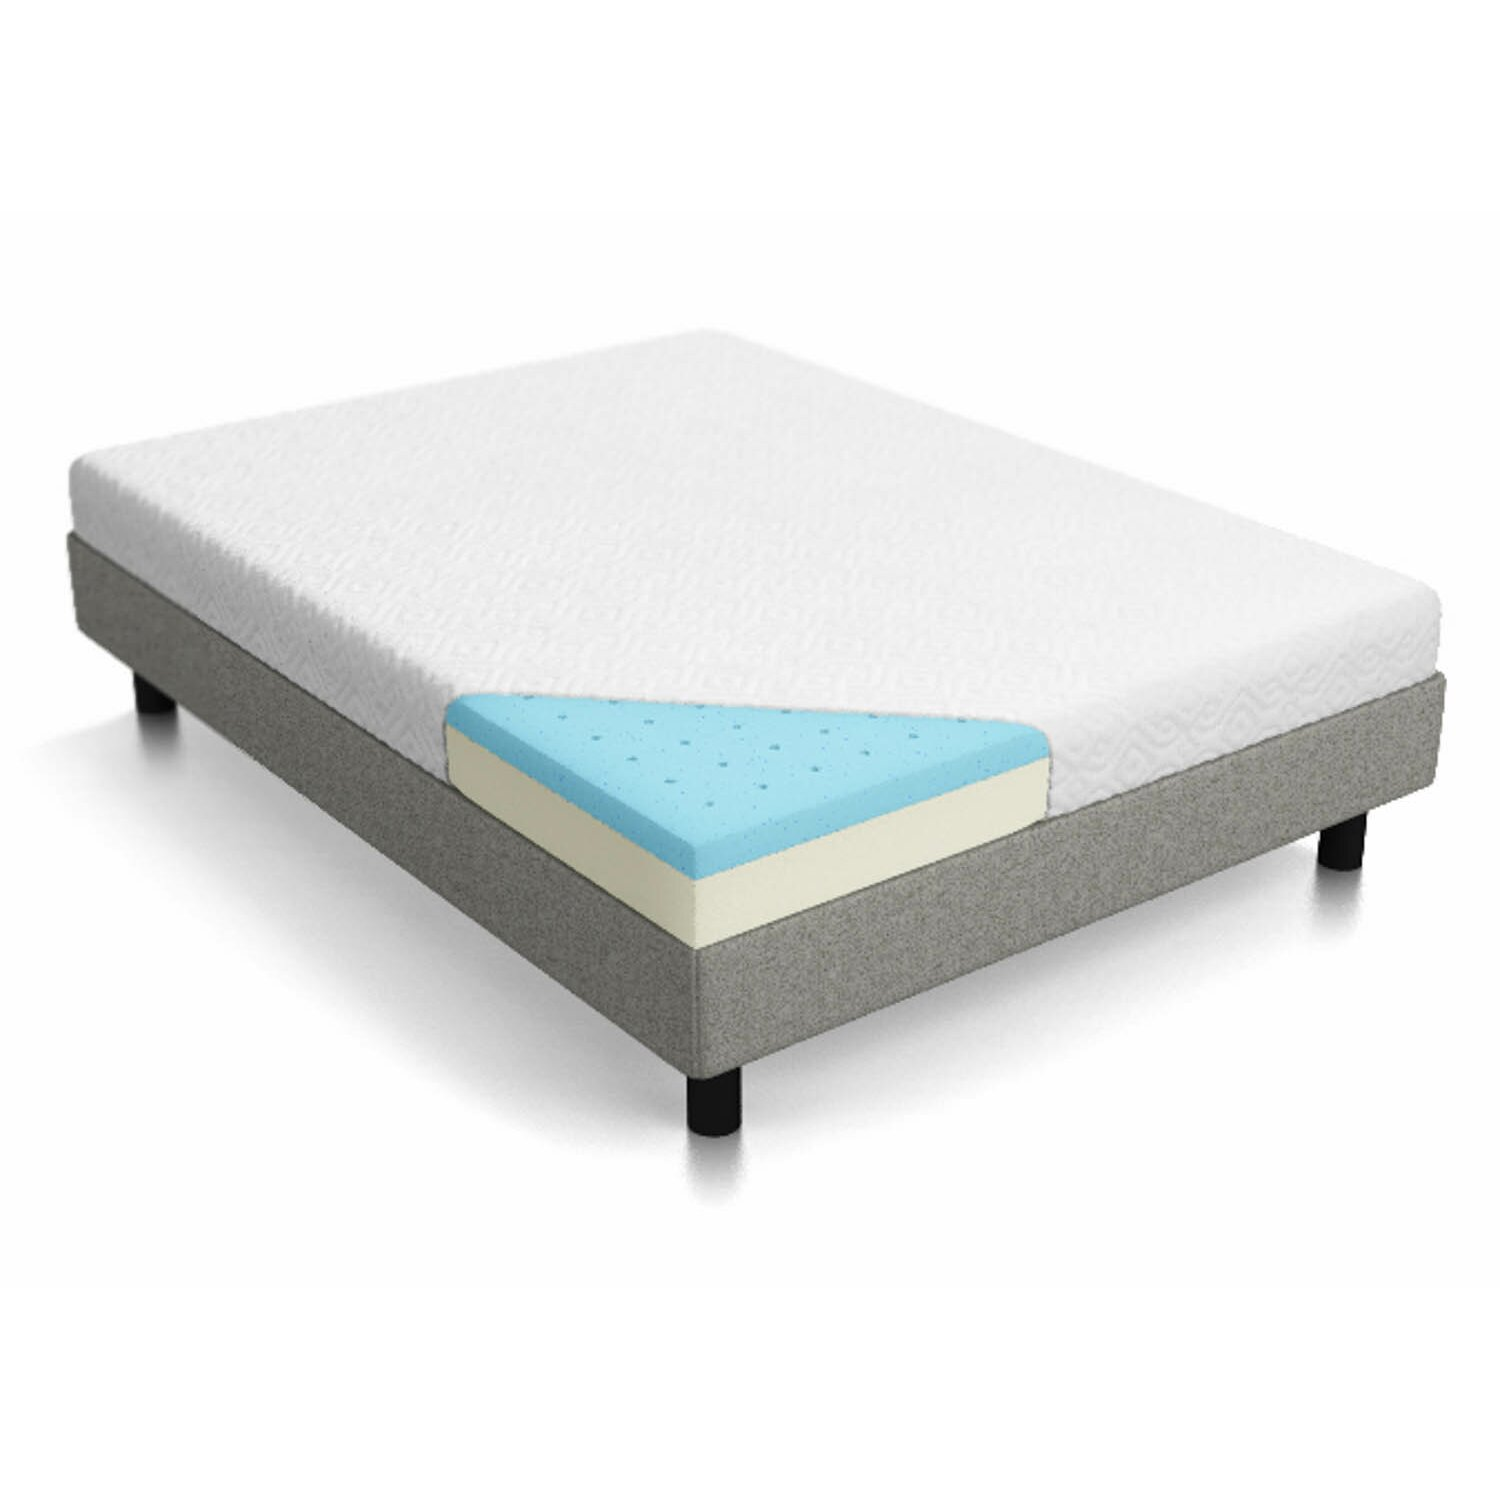 Mine Latex foam mattress california